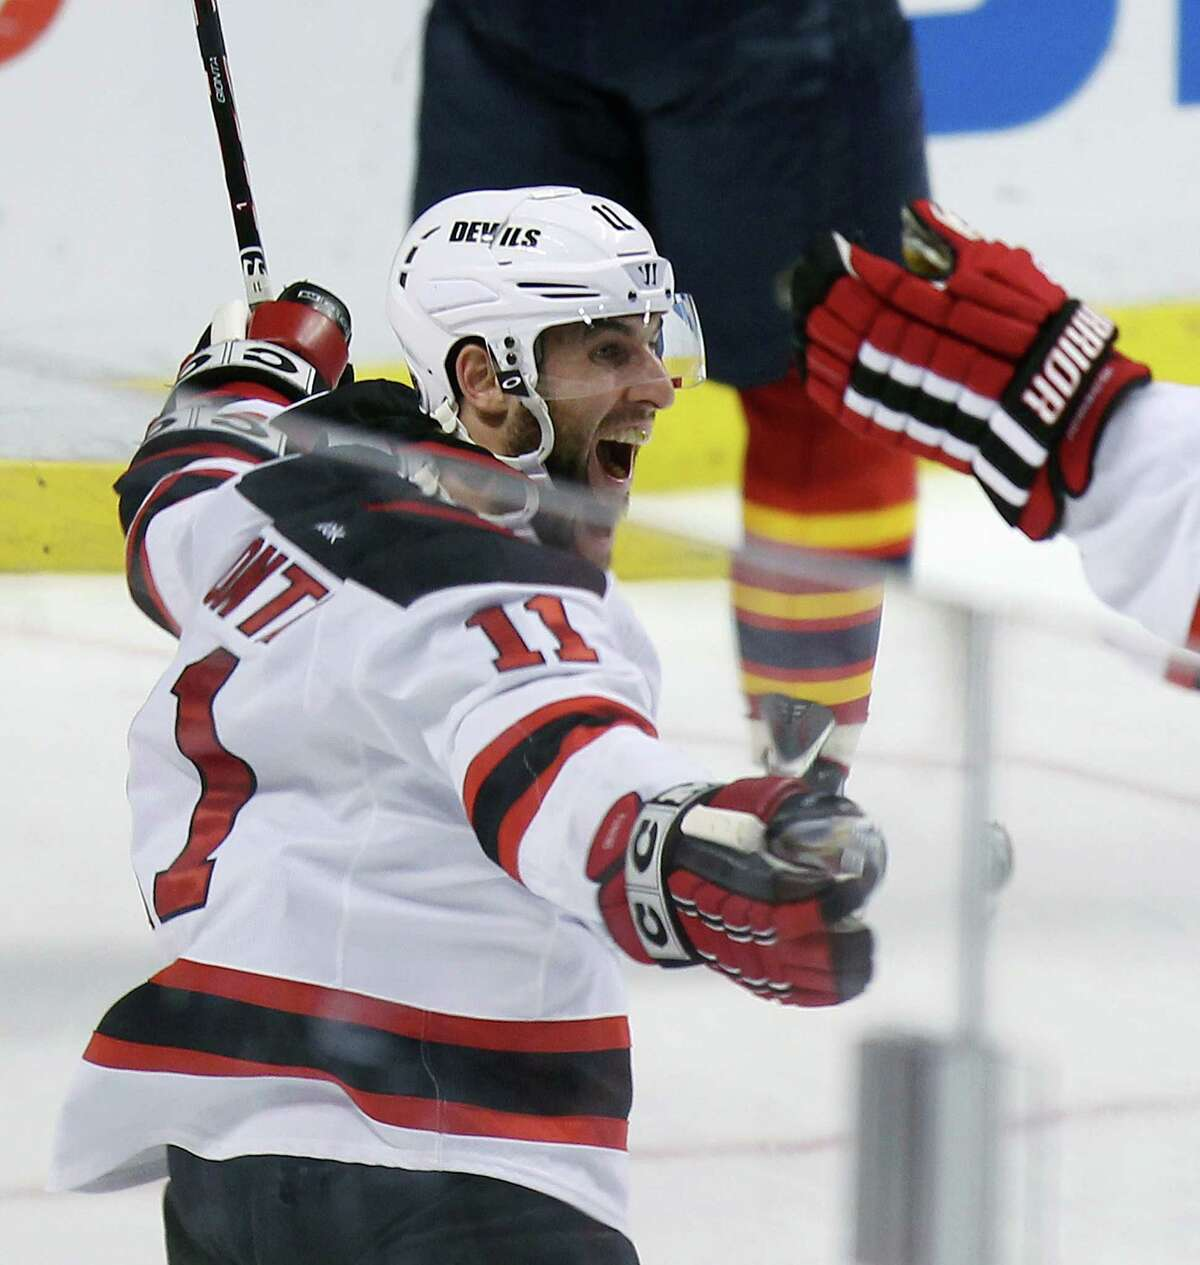 New Jersey Devils' Stephen Gionta (11) celebrates his goal during the second period of Game 7 in a first-round NHL Stanley Cup playoff hockey series in Sunrise, Fla., Wednesday, April 26, 2012, against the Florida Panthers. (AP Photo/J Pat Carter)